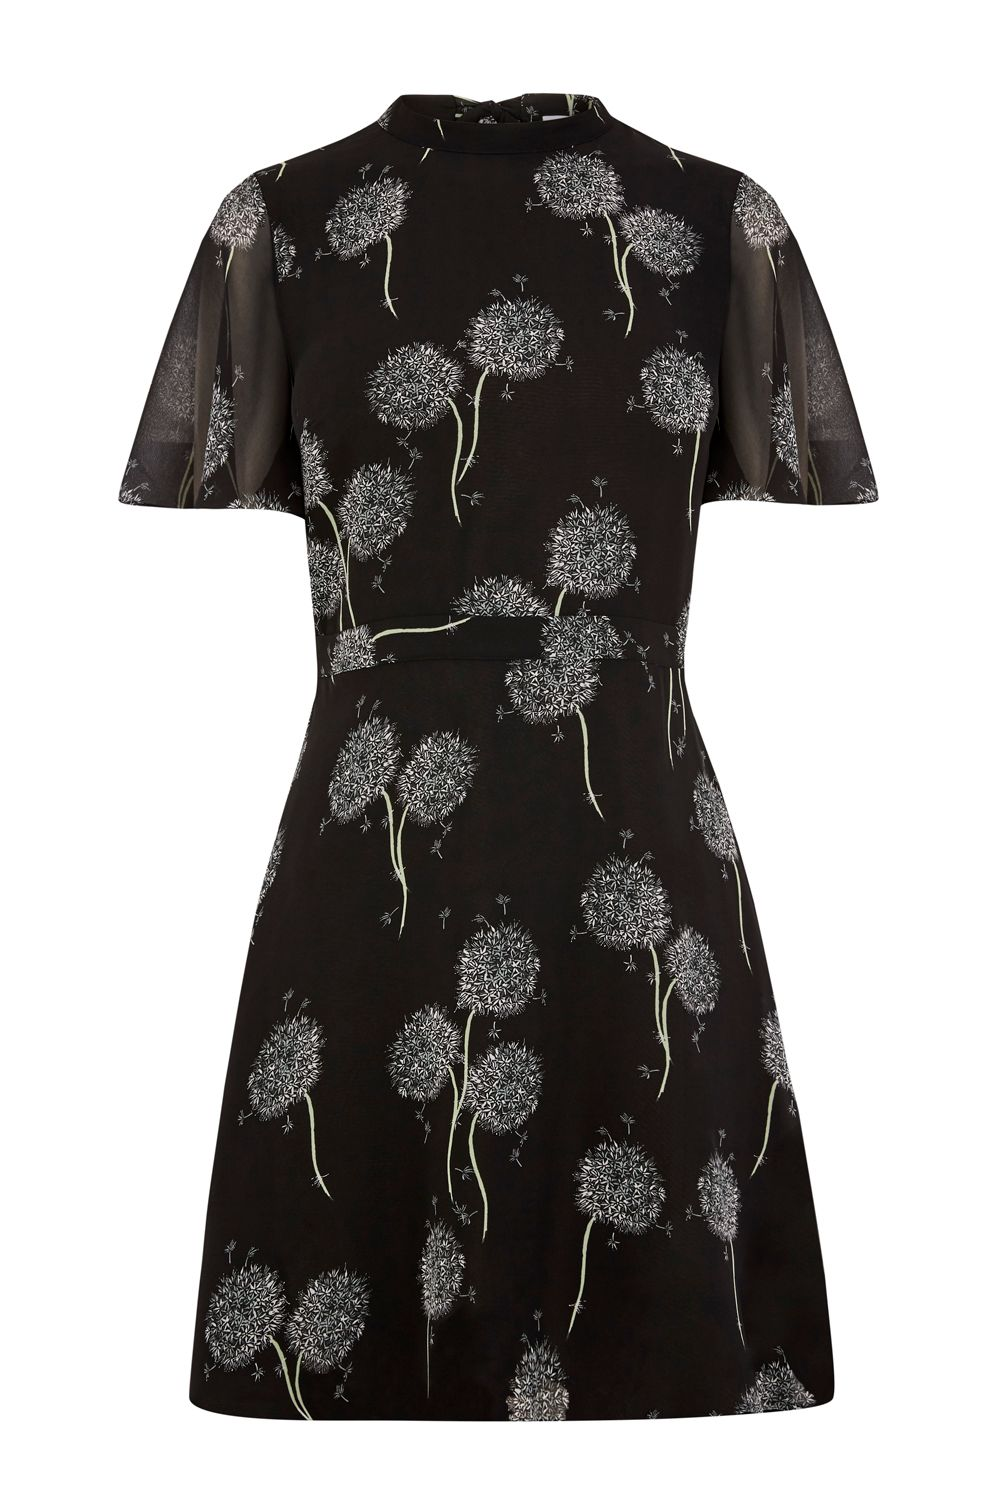 Warehouse Dandelion Print Dress, Black